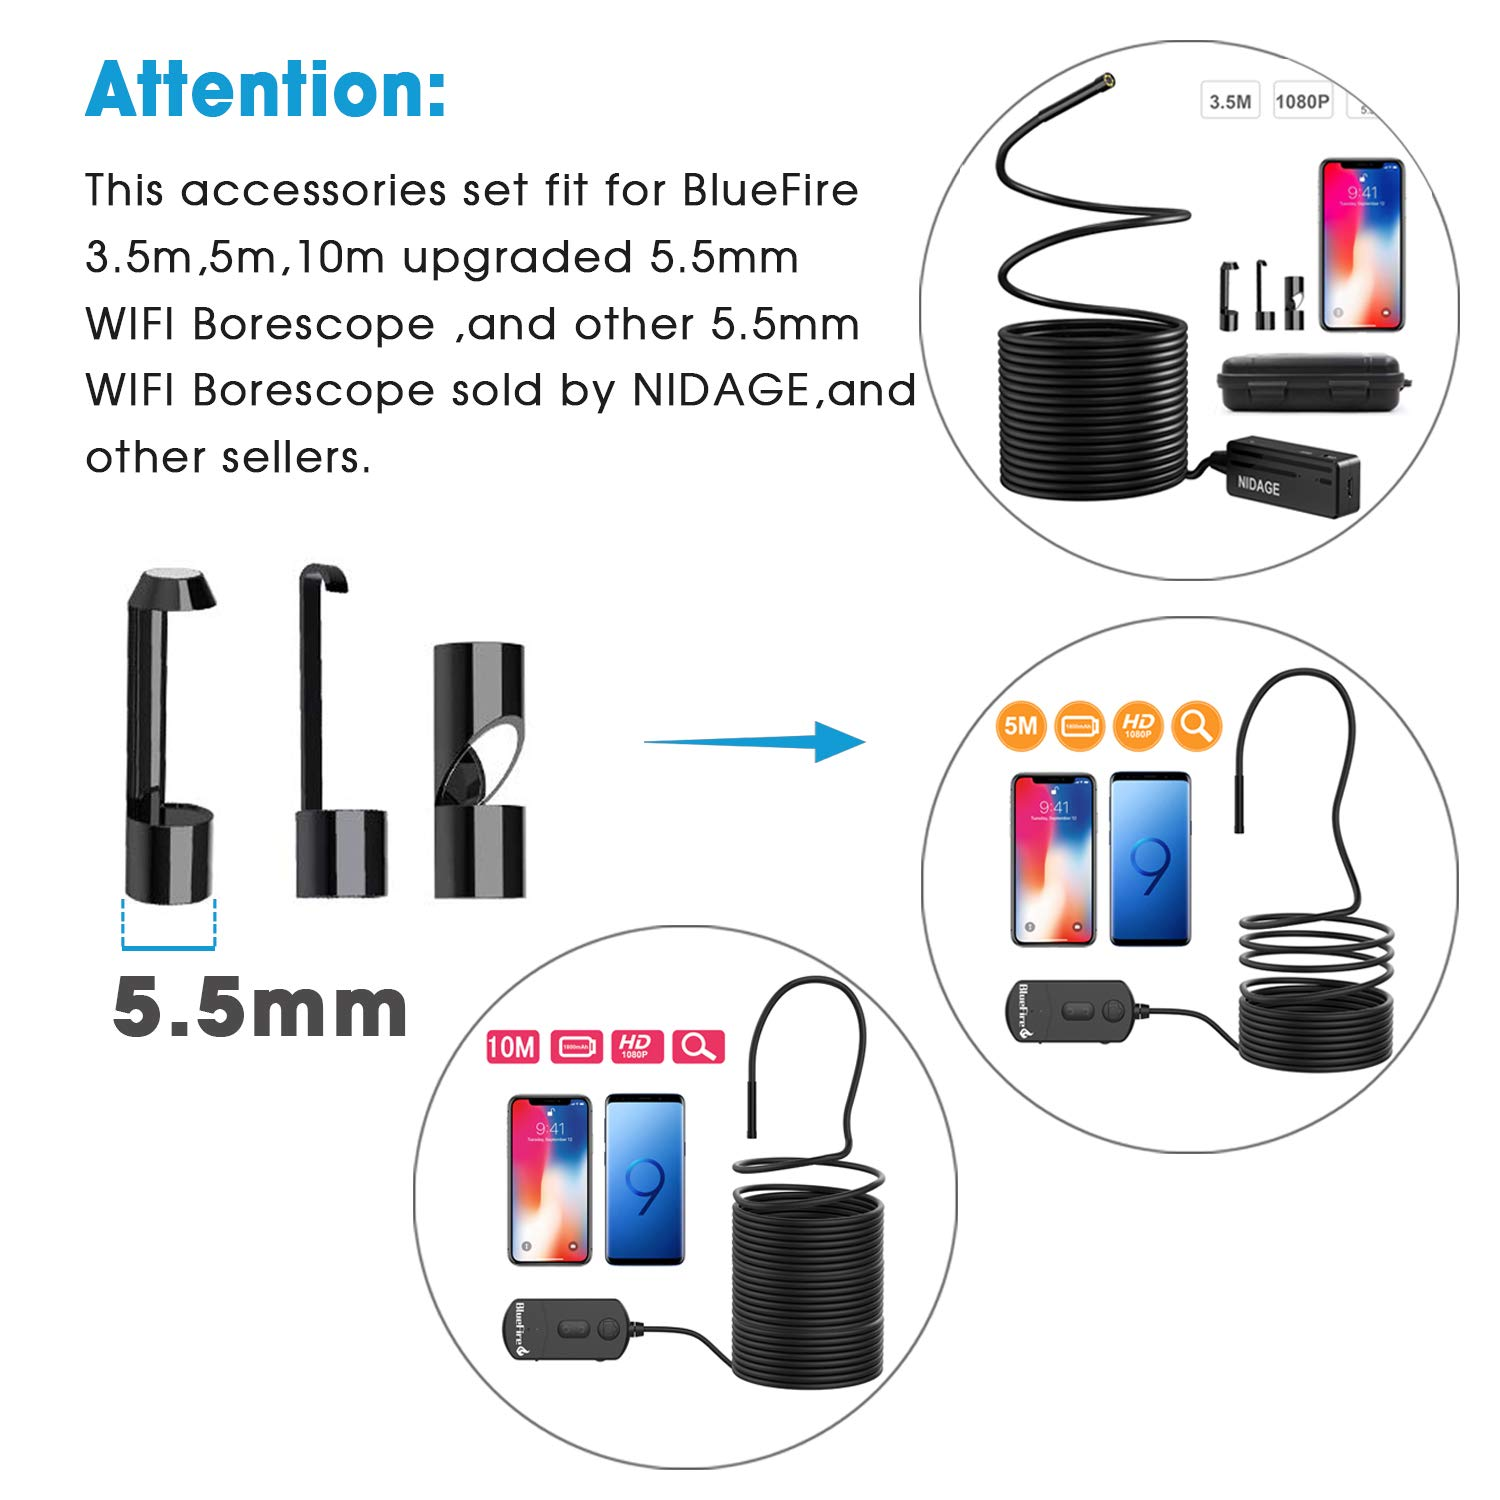 BlueFire Hook Magnet Side View Mirror Endoscope Accessories Set for 8.5mm and 5.5mm Wireless Endoscope WiFi Borescope Inspection Camera